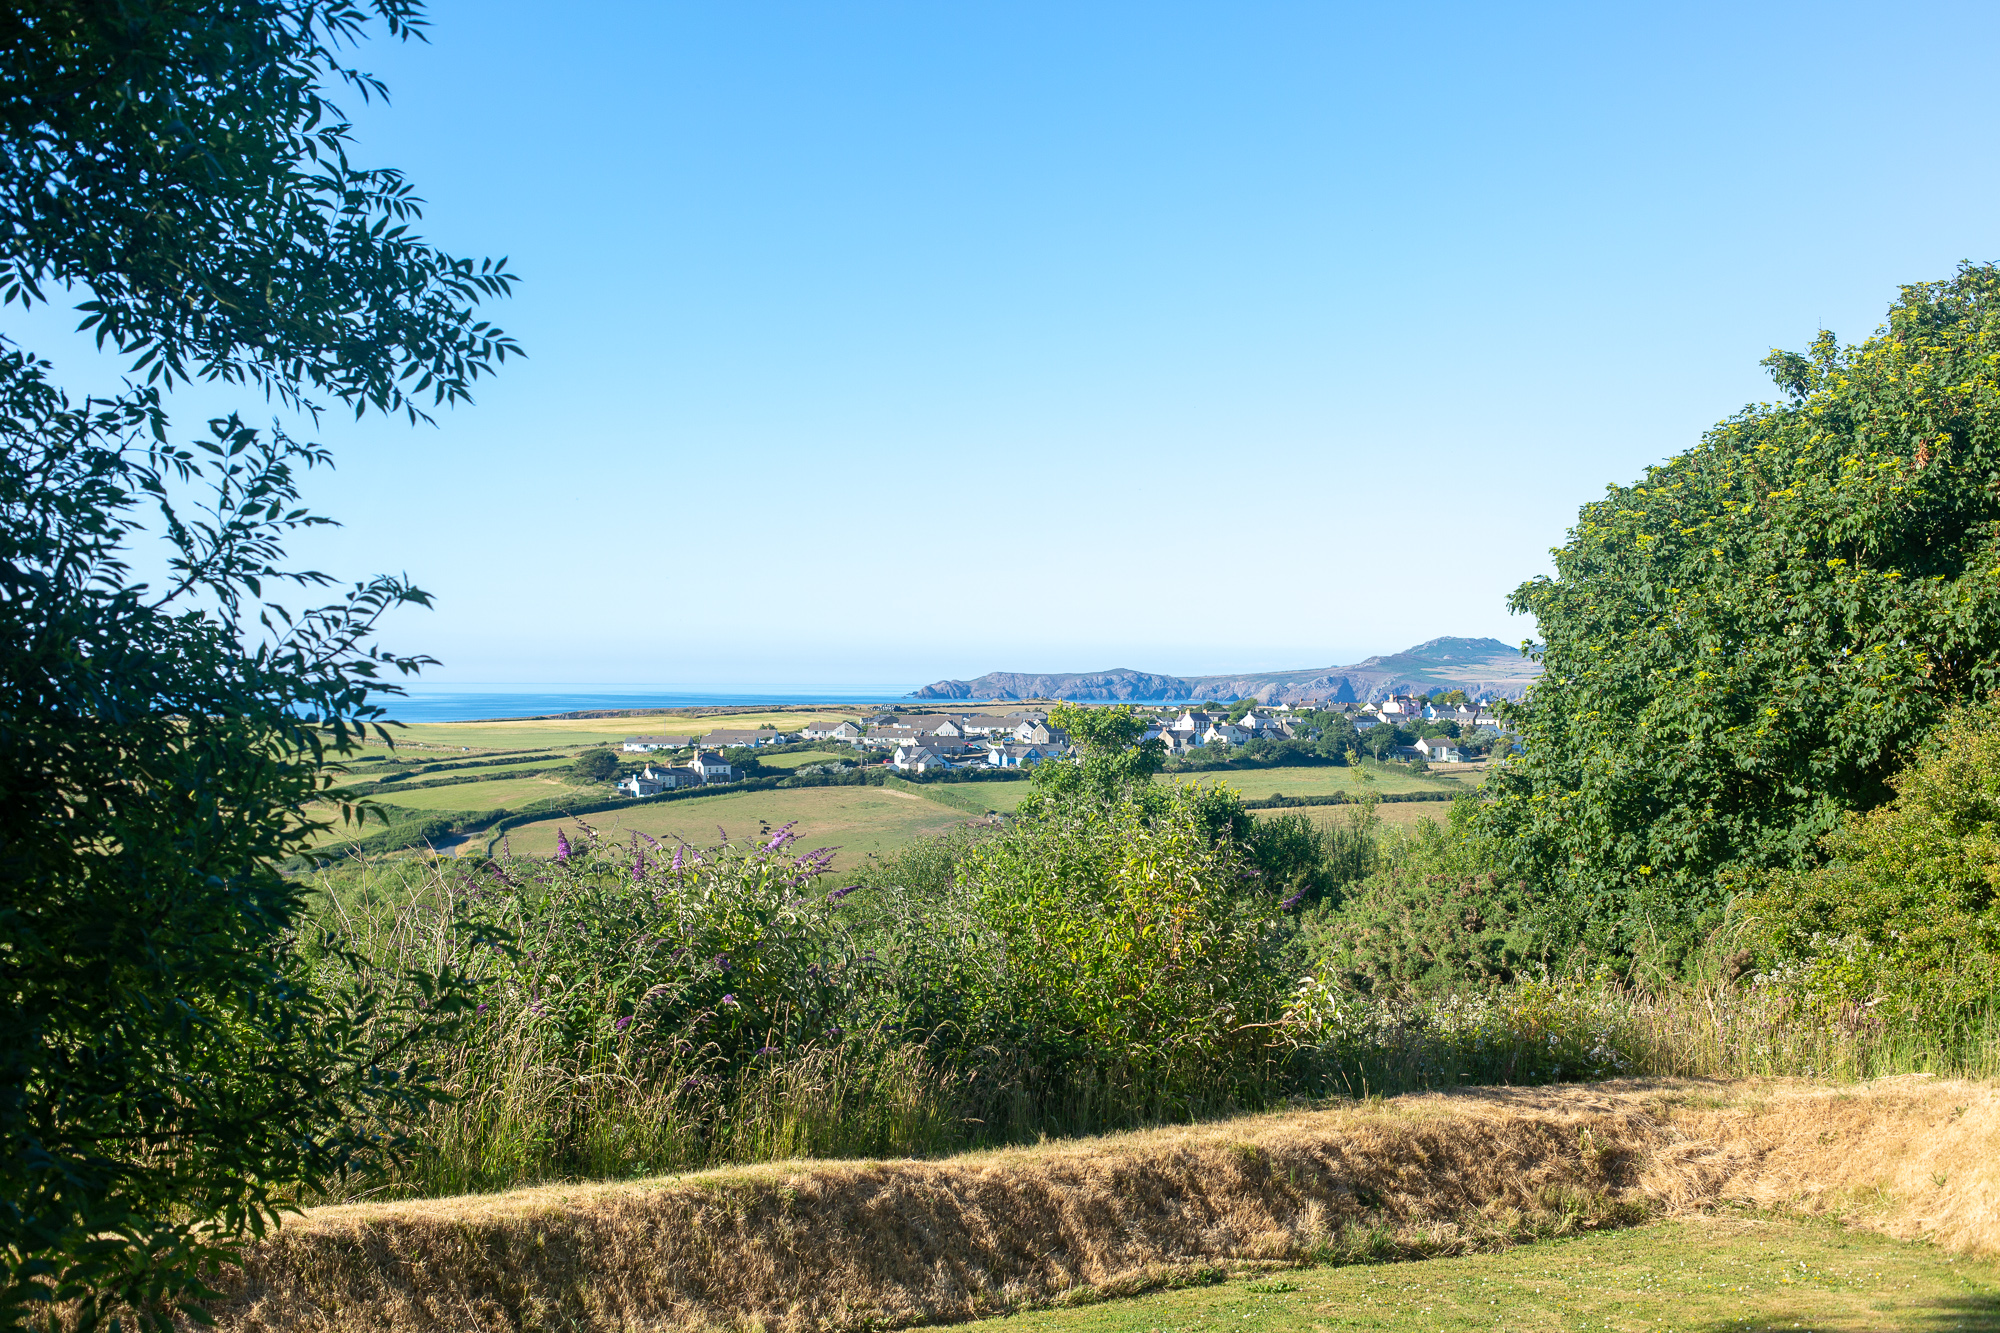 Yr Hafan landscaped gardens and sea views towards Struble Head